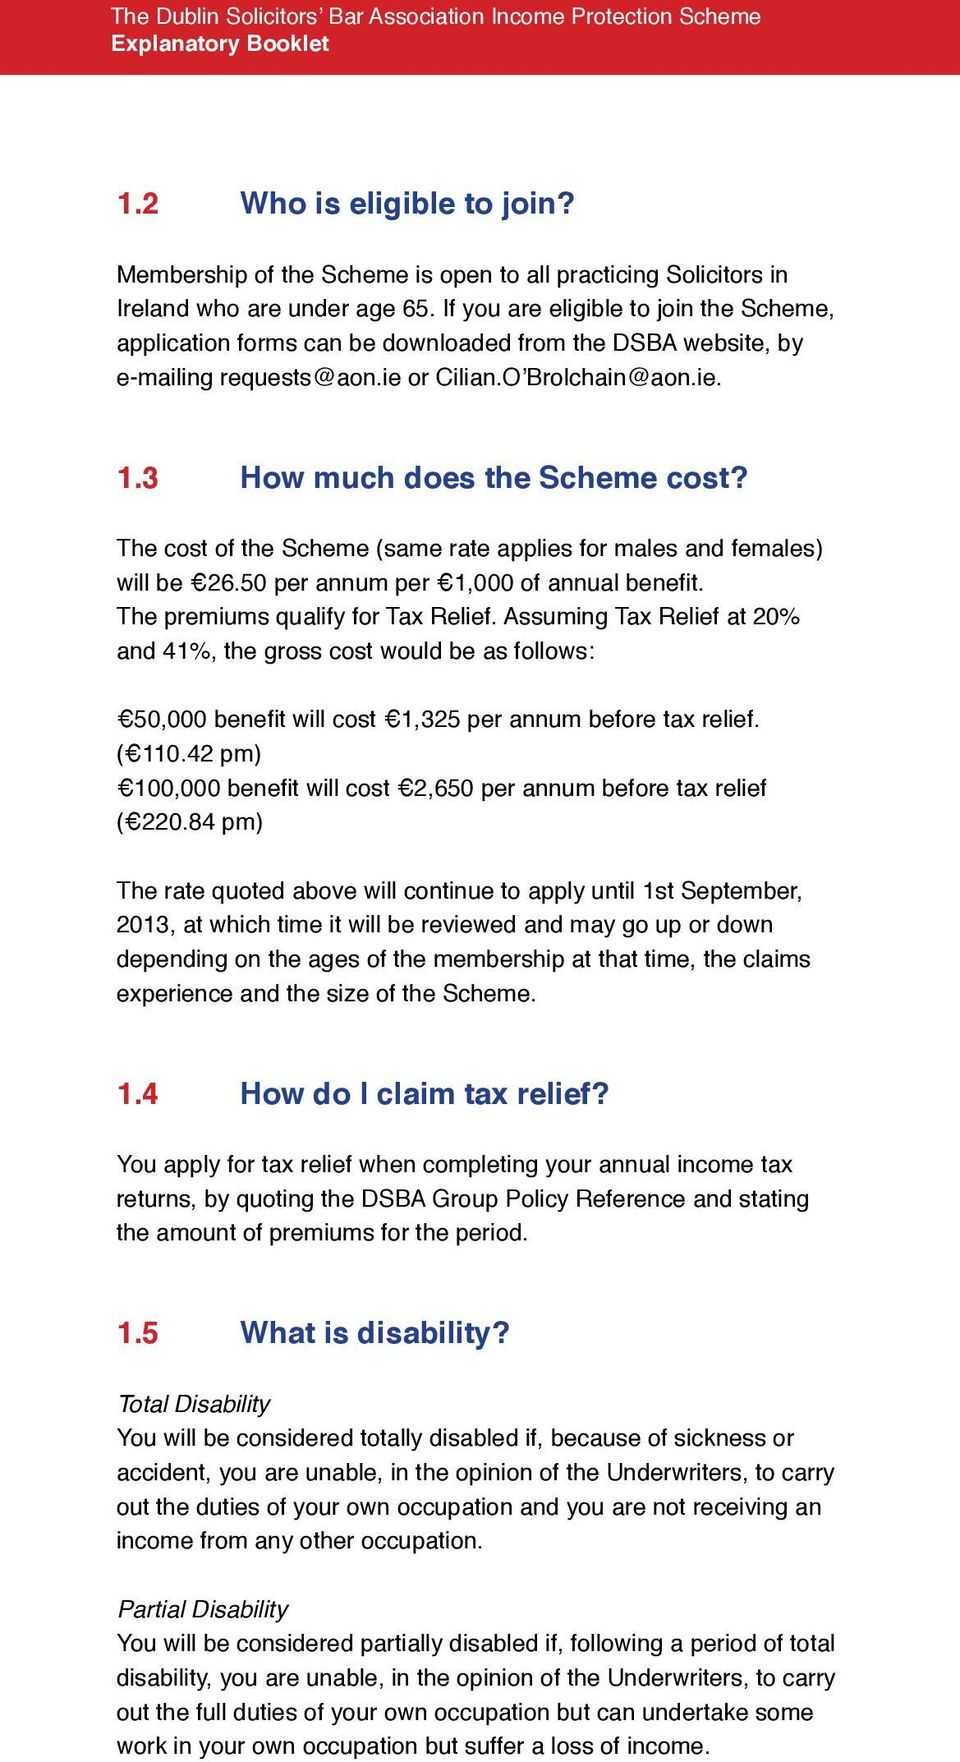 The cost of the Scheme (same rate applies for males and females) will be 26.50 per annum per 1,000 of annual benefit. The premiums qualify for Tax Relief.